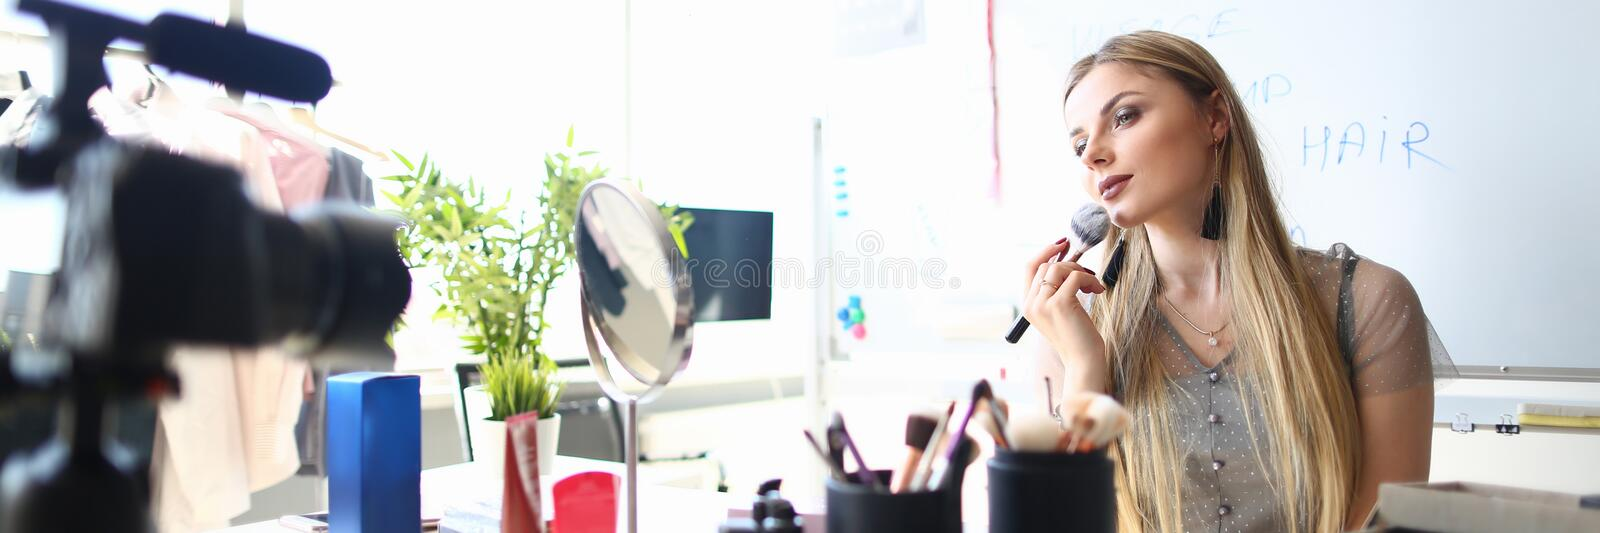 Female Blogger do Makeup Beauty Product Review royalty free stock images